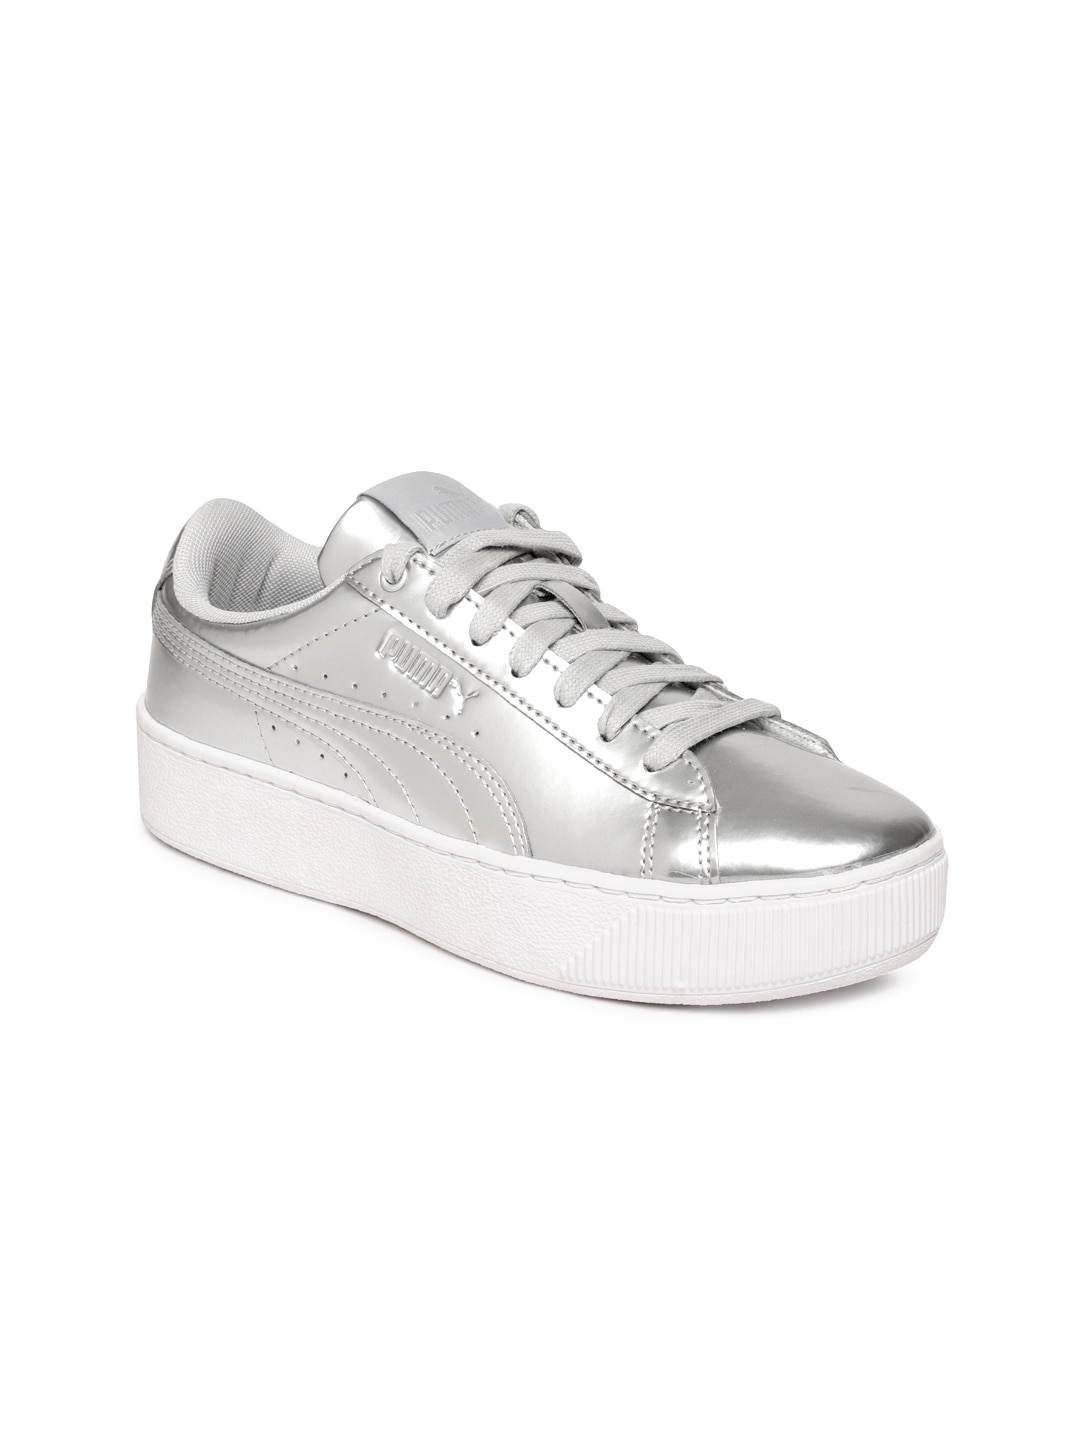 34373407a79d52 Puma Windcell Ikonis 2 Headband Sipper Casual Shoes - Buy Puma Windcell  Ikonis 2 Headband Sipper Casual Shoes online in India